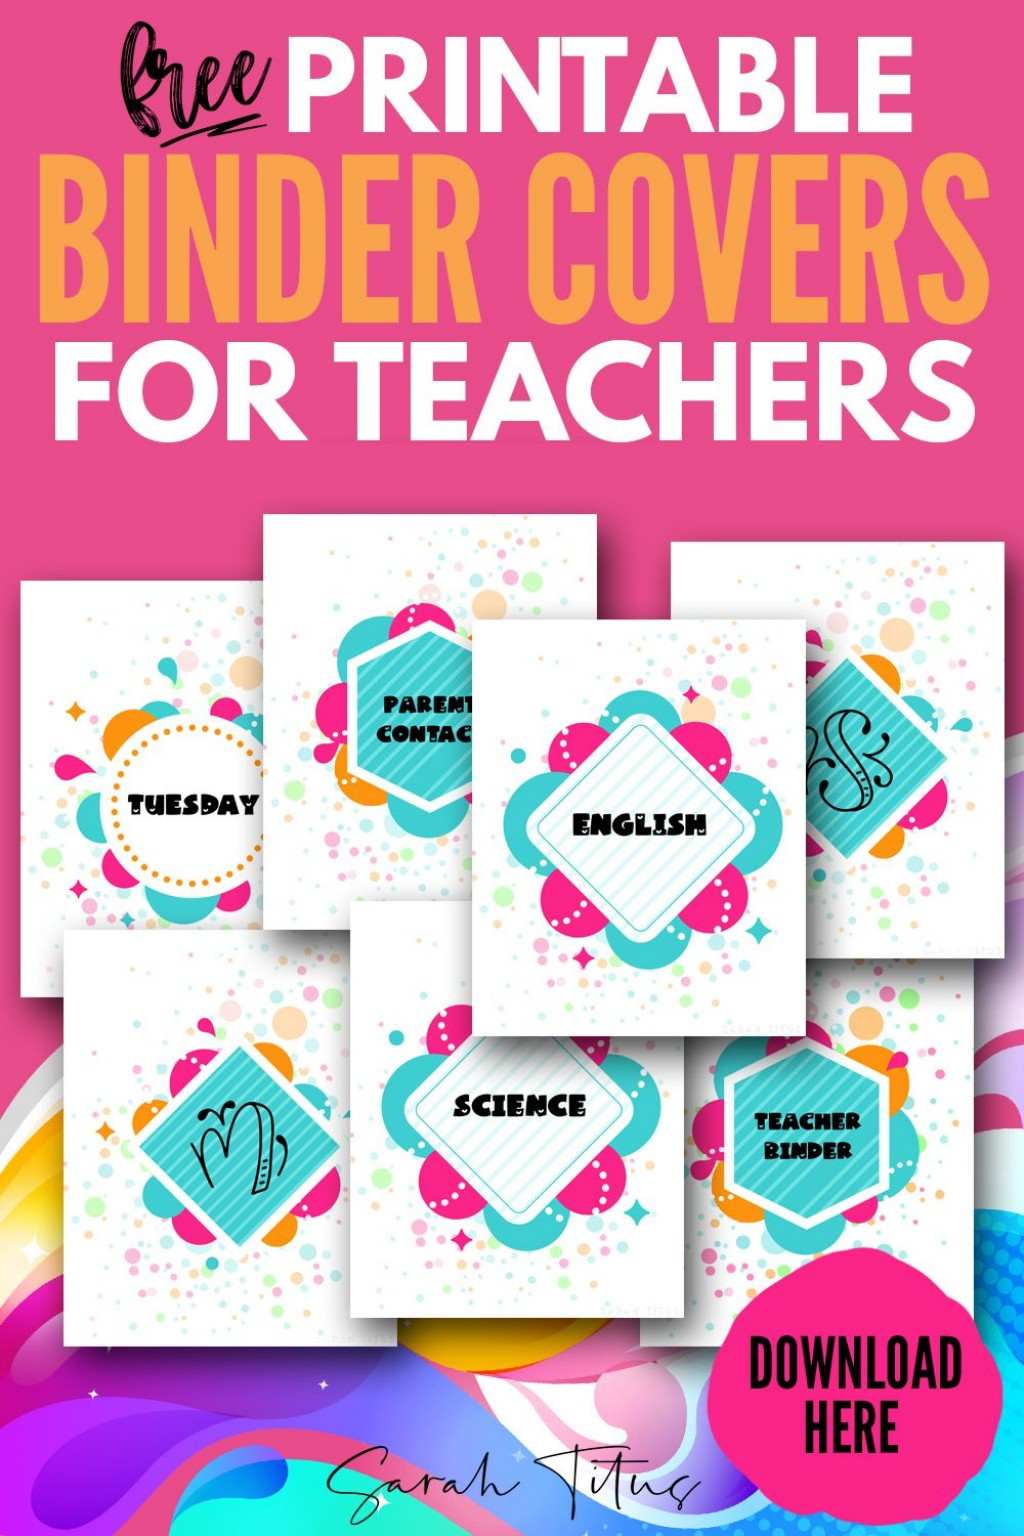 003 Fearsome Cute Binder Cover Template Free Printable Highest Clarity Large